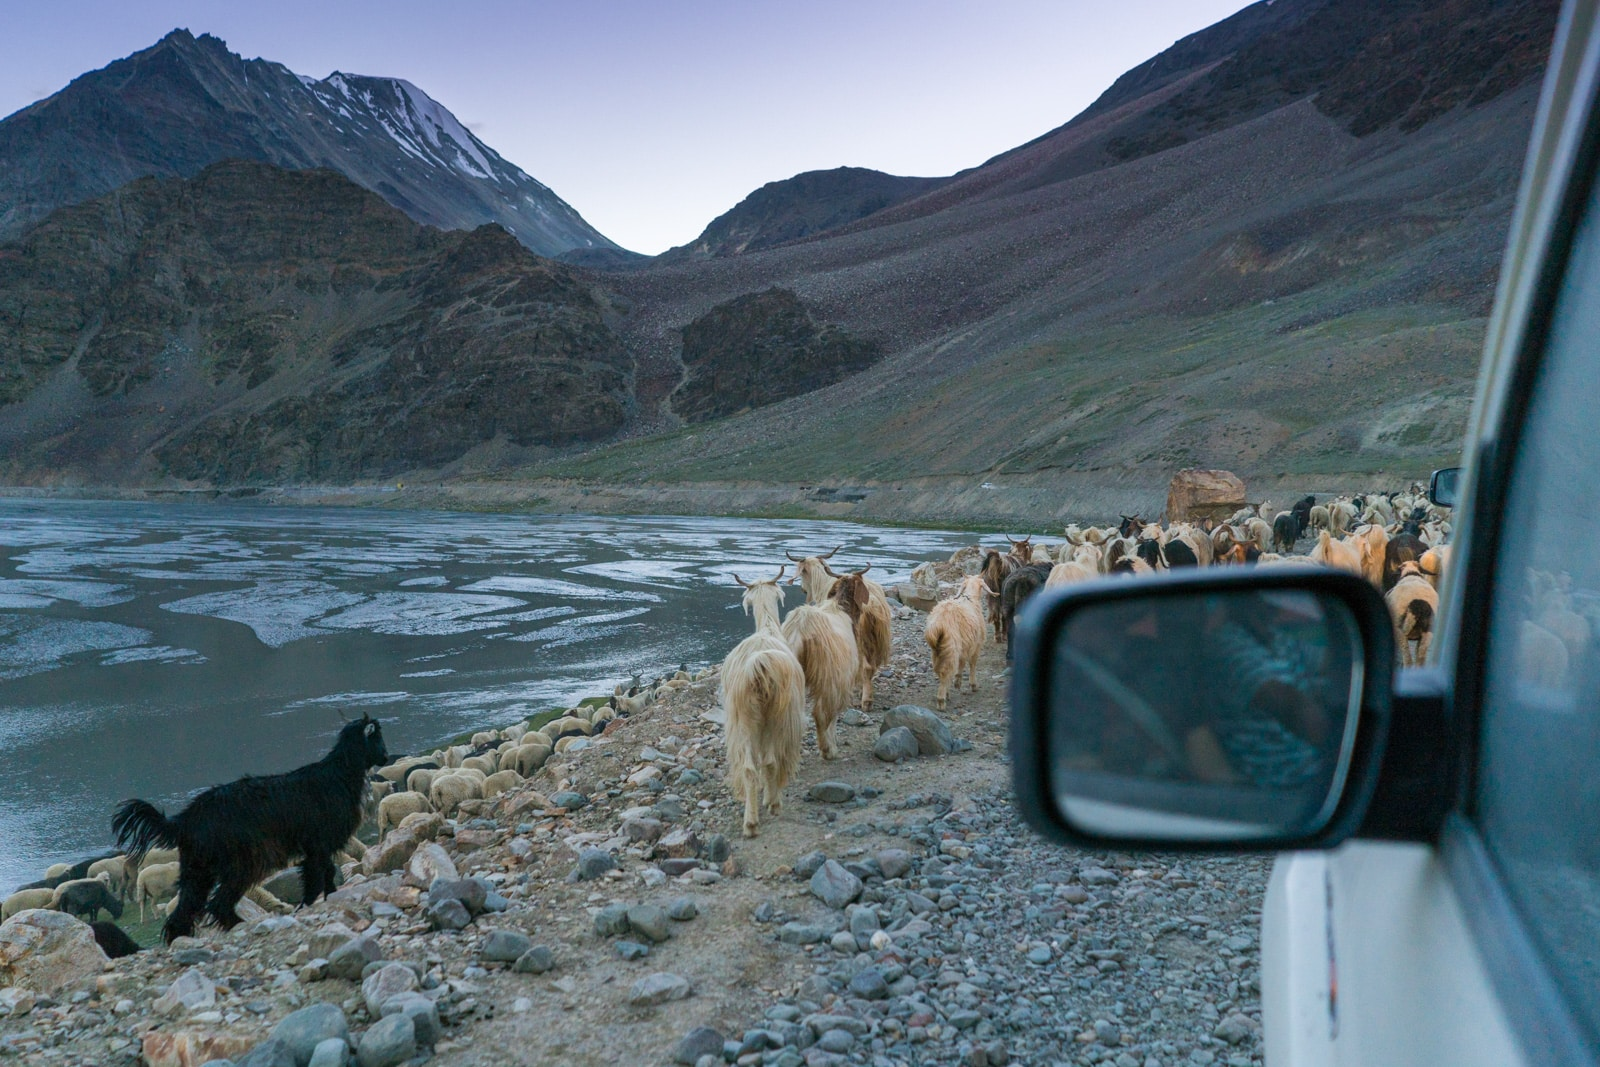 Hitchhiking the Leh - Manali highway - Goats on the road in the evening - Lost With Purpose travel blog